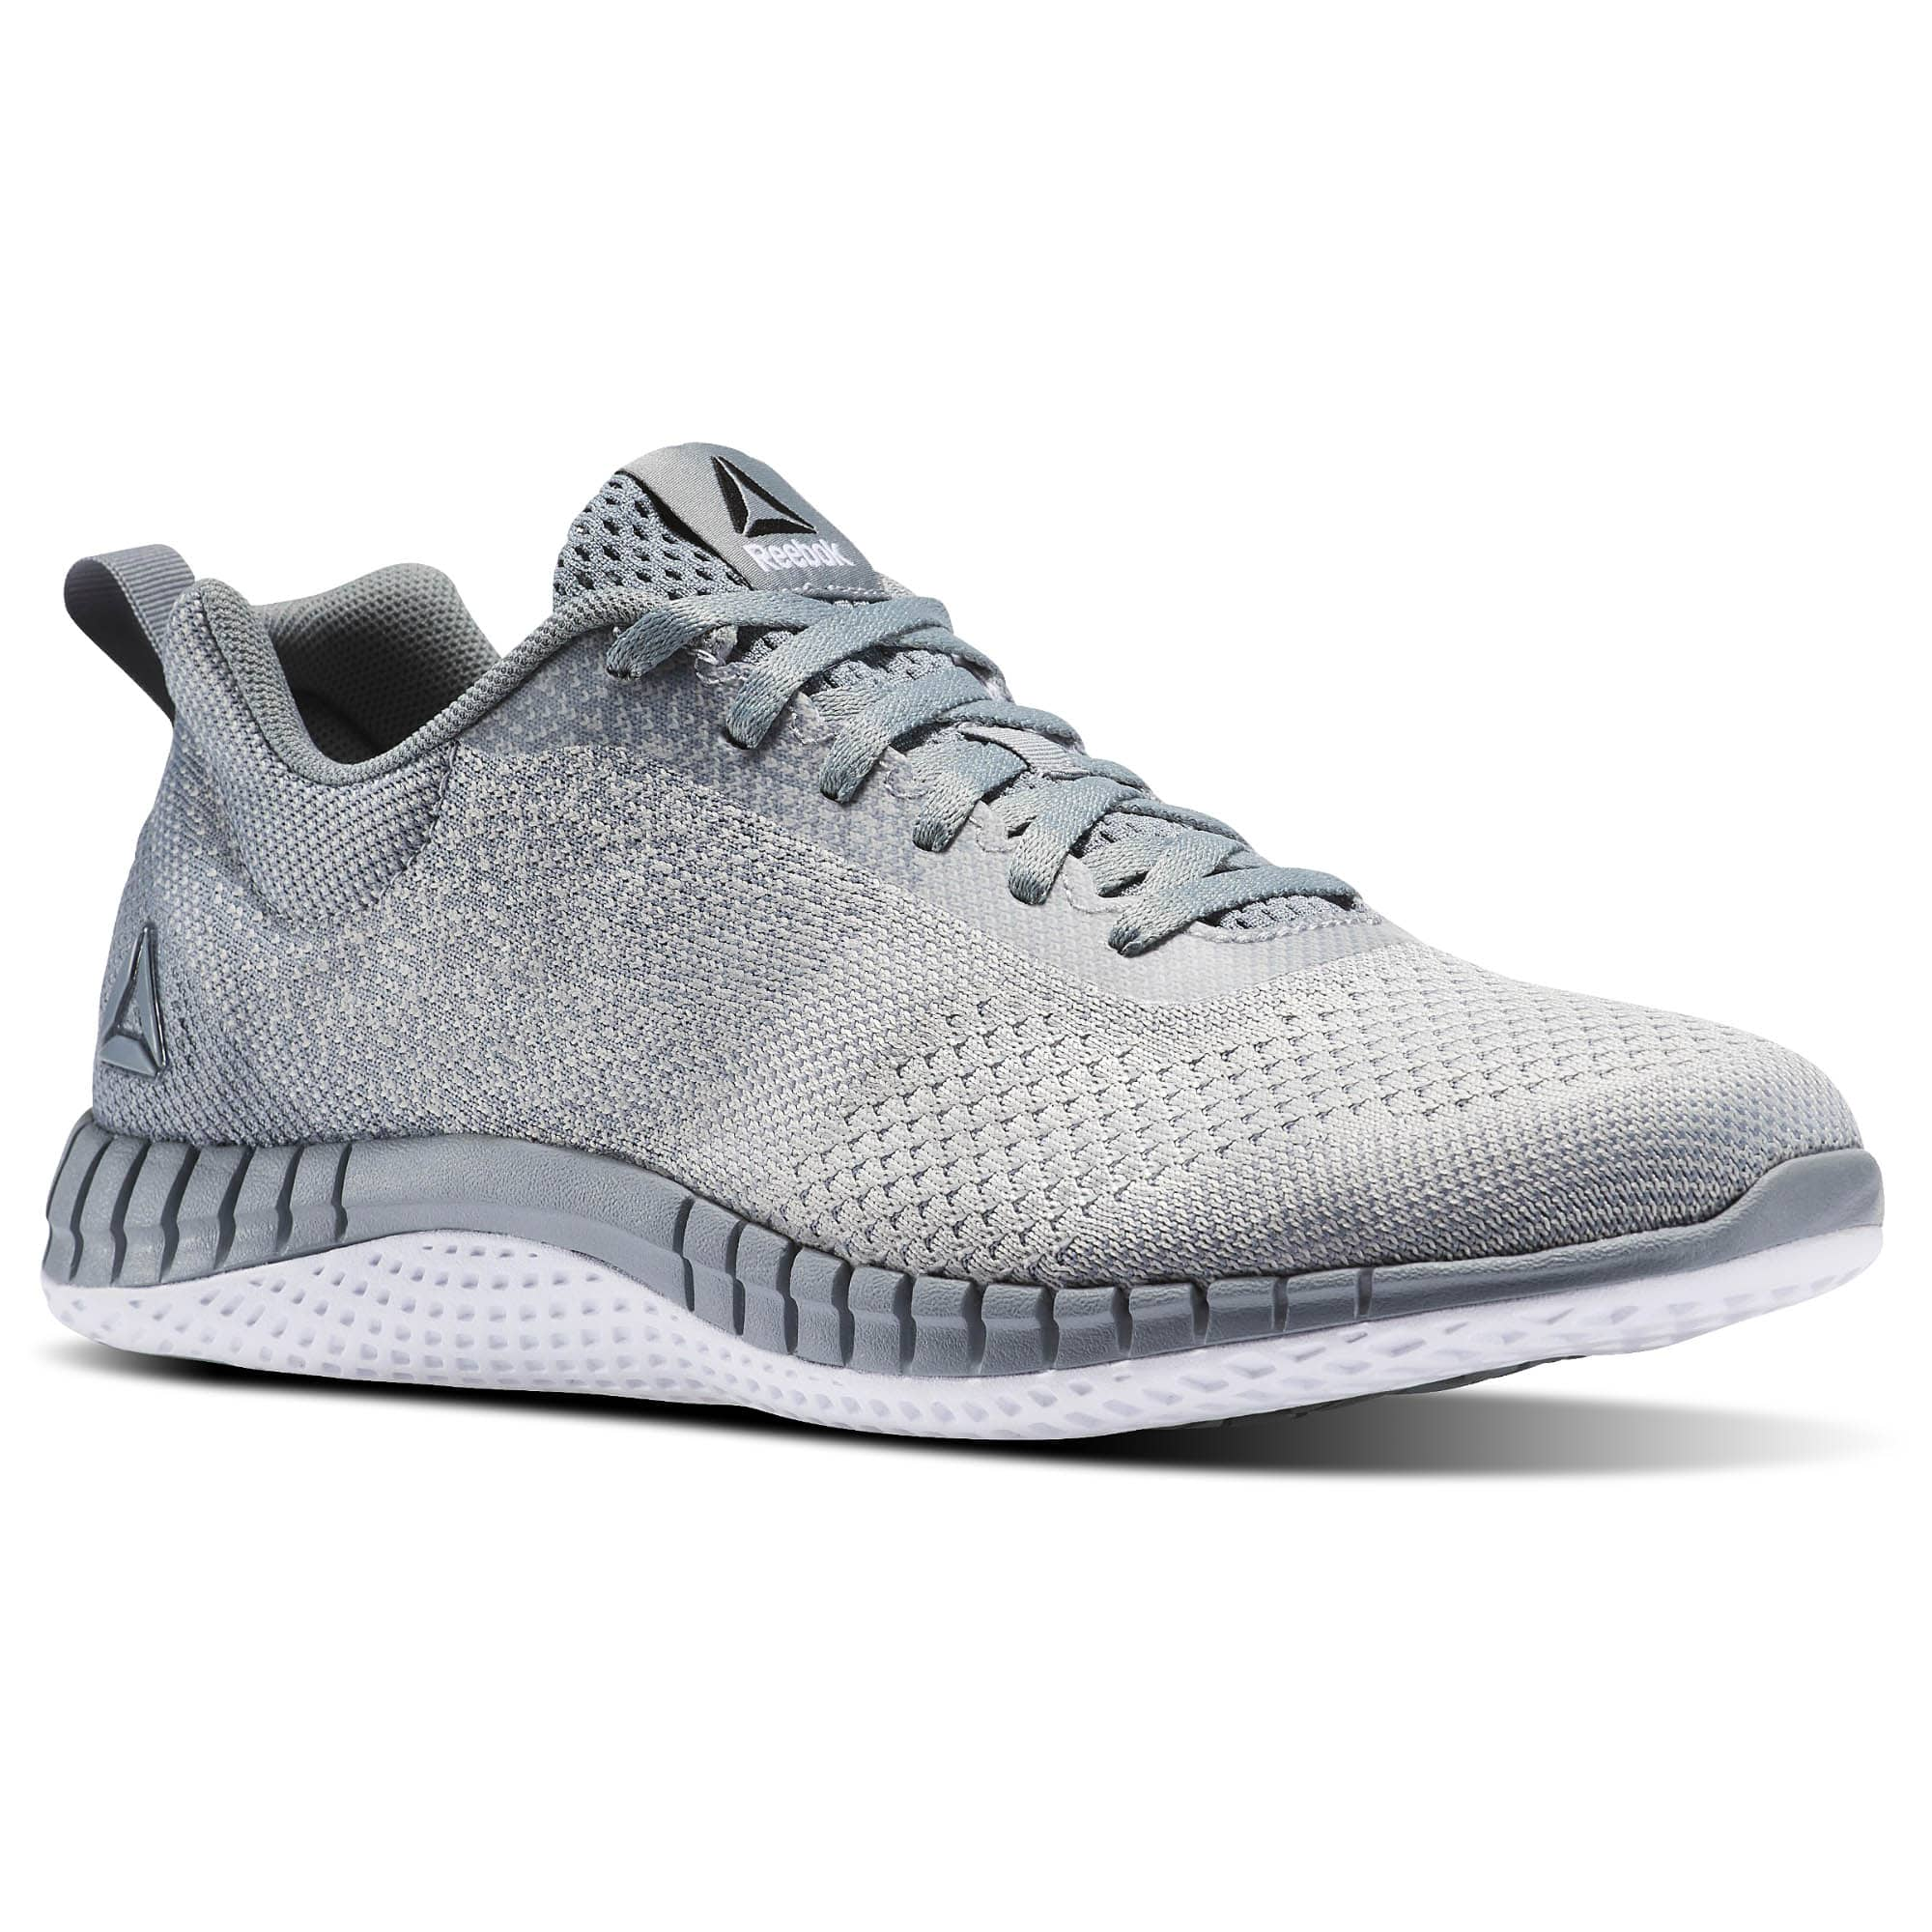 Reebok Sport Chaussures Print Run Smooth Ultraknit Reebok Sport Asics Chaussure Gel Challenger 11 Noir SS18-42 Chaussures de mariage Chaussures de mariage bleues Chaussures Adidas Fashion homme Reebok Sport Chaussures Print Run Smooth Ultraknit Reebok Sport sUFVHLhV